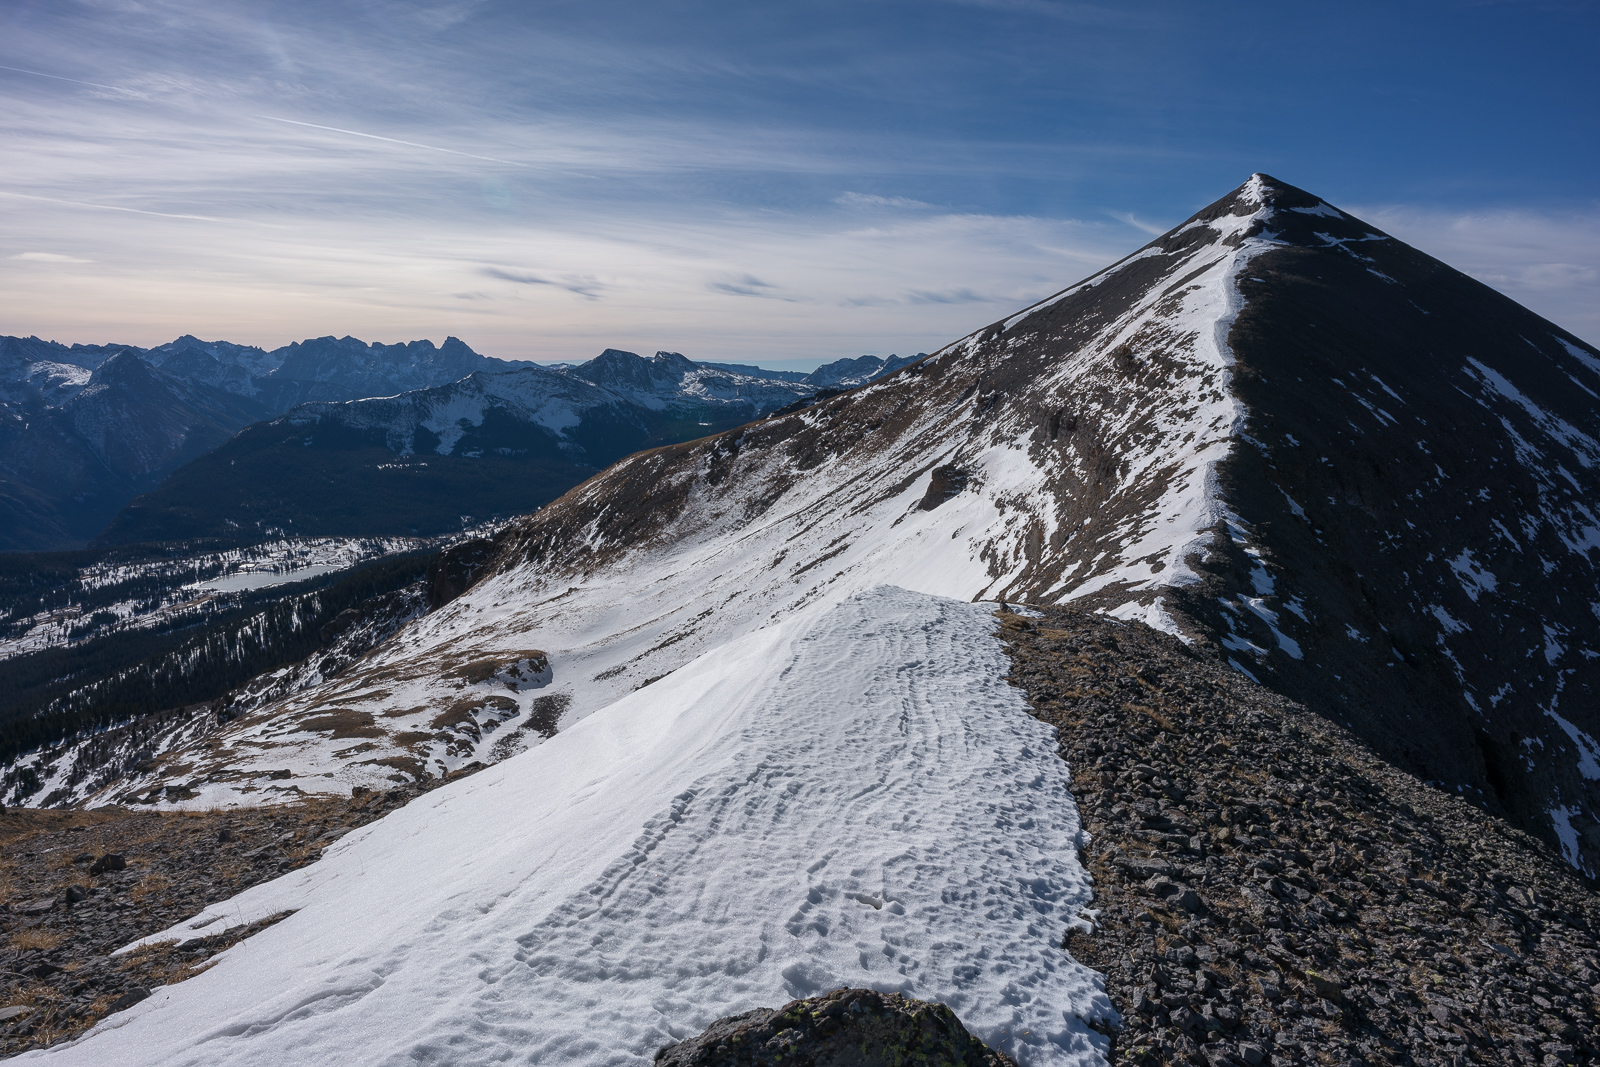 Spencer Peak